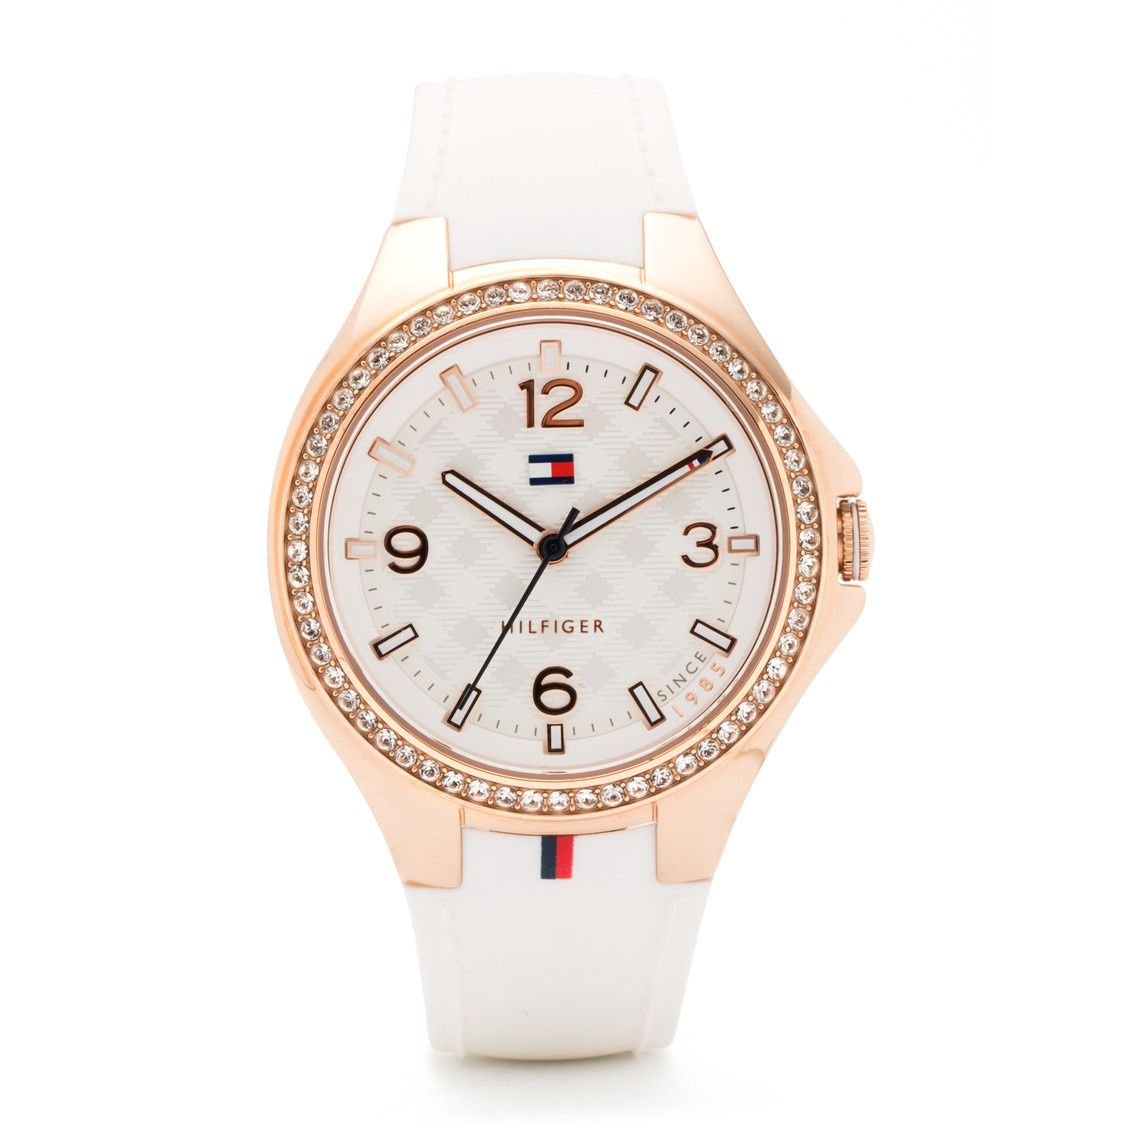 69cfd512402 Tommy Hilfiger Toni Watch - Official Tommy Hilfiger® Store ...